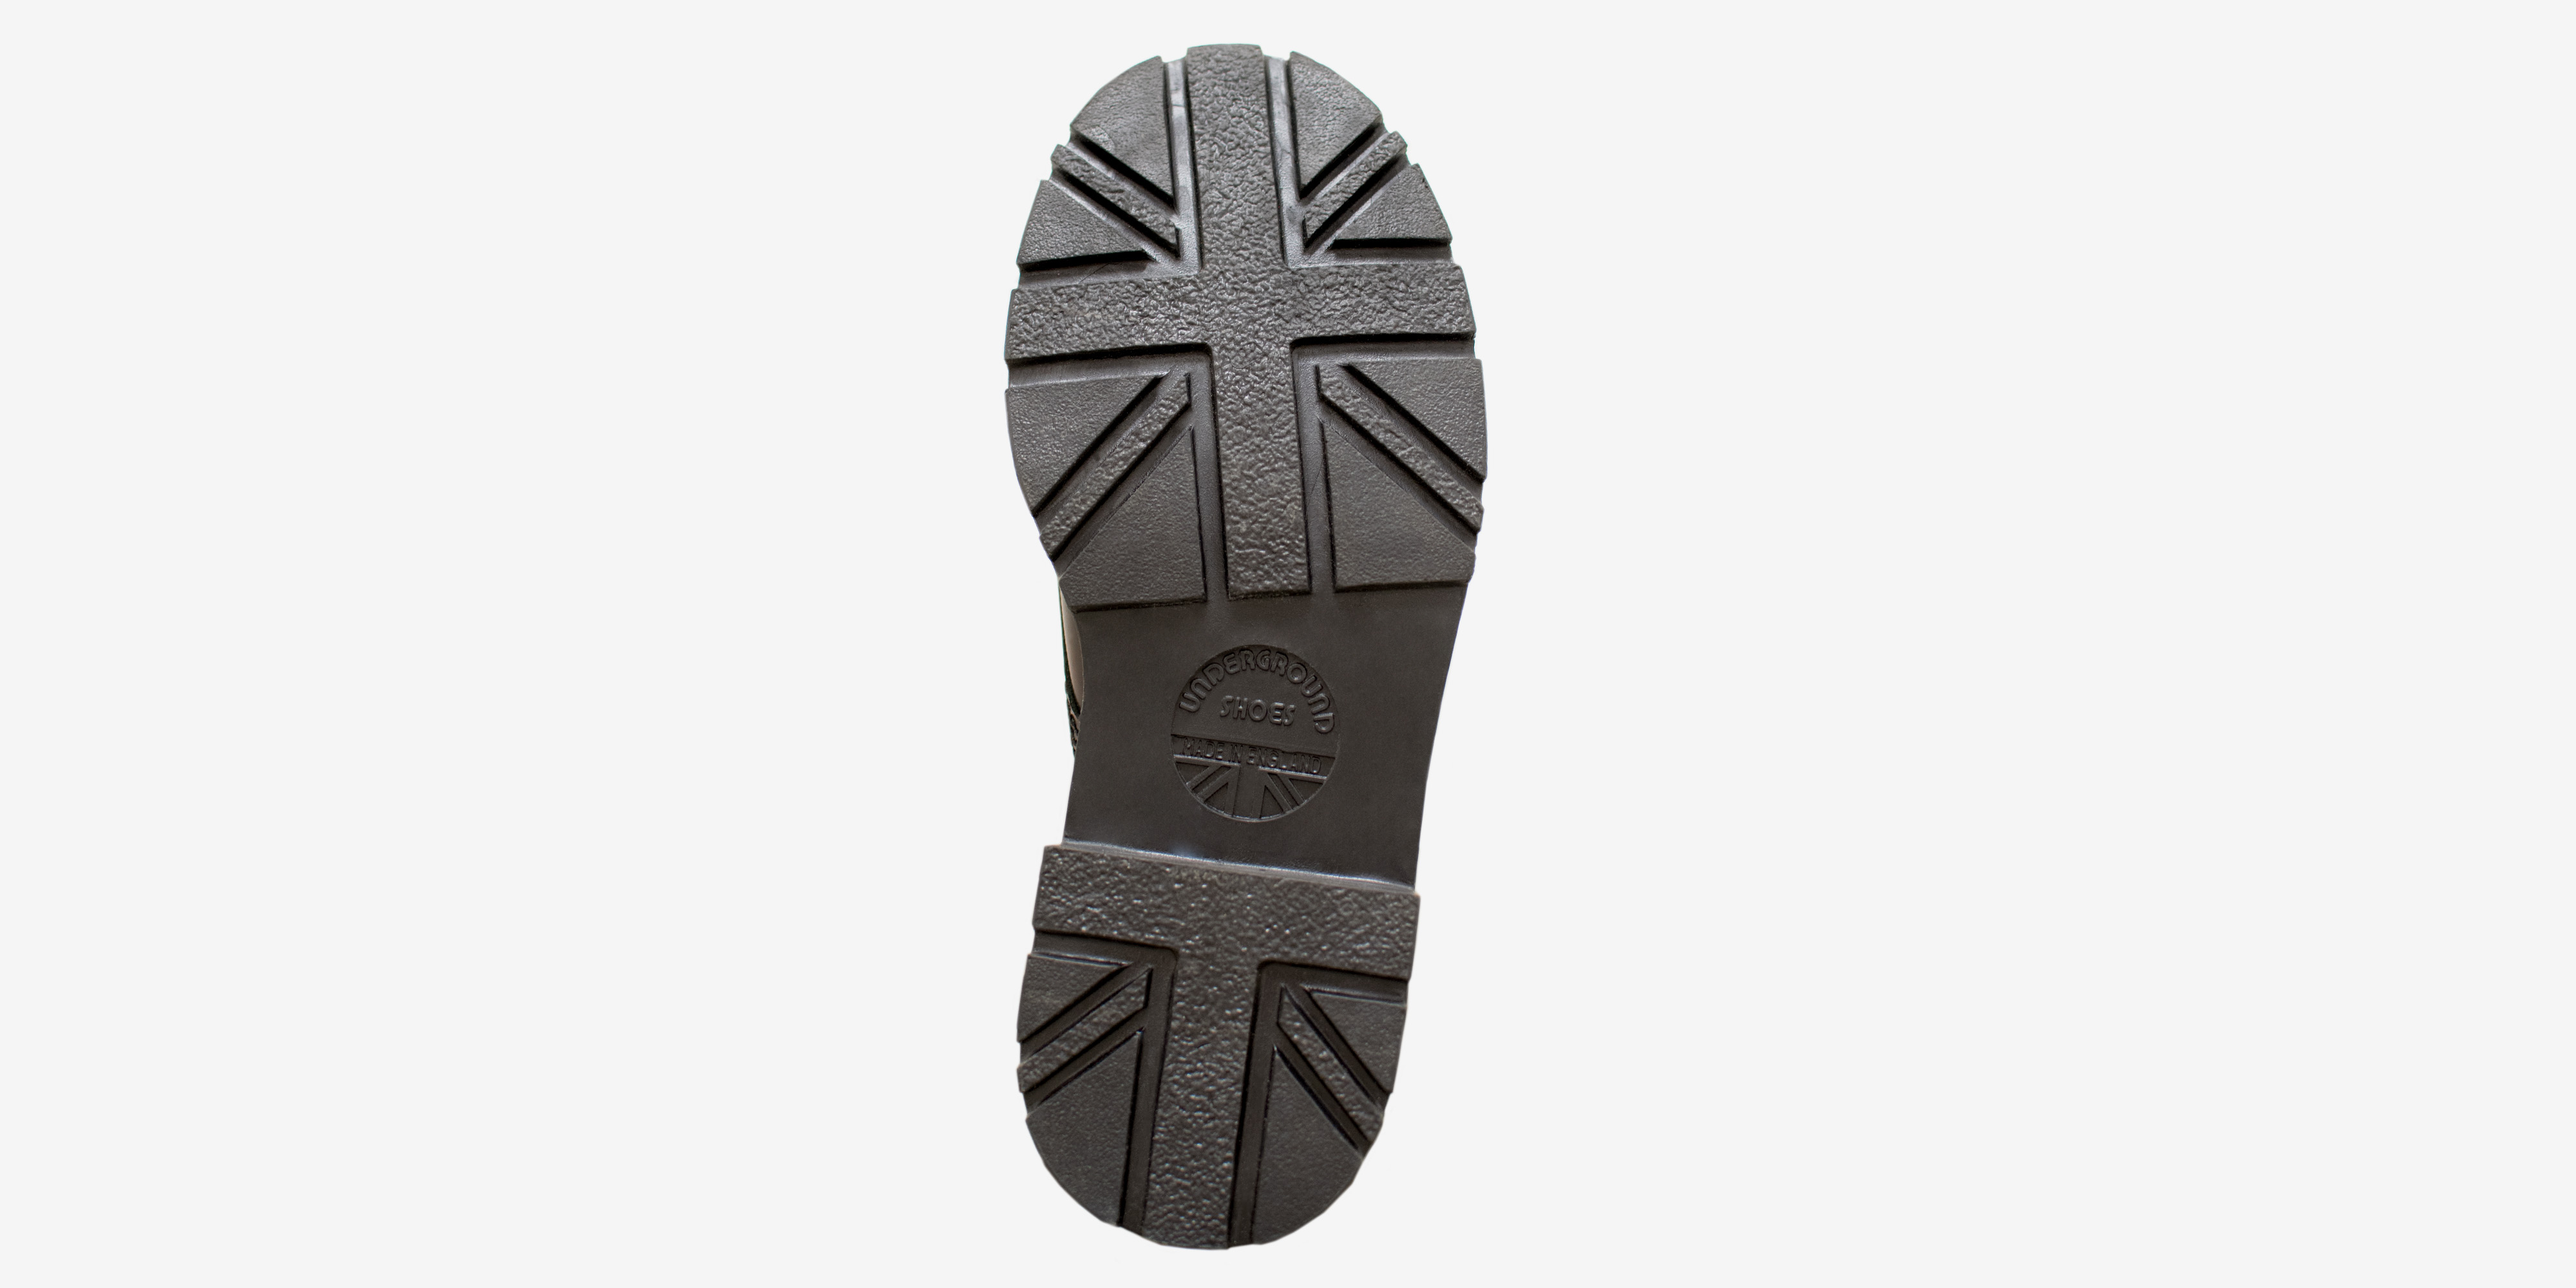 cd2564e7a5d WARRIOR 4 BUCKLE BOOT WITH UNION JACK SOLE - BLACK LEATHER & METAL PLATE -  SINGLE SOLE